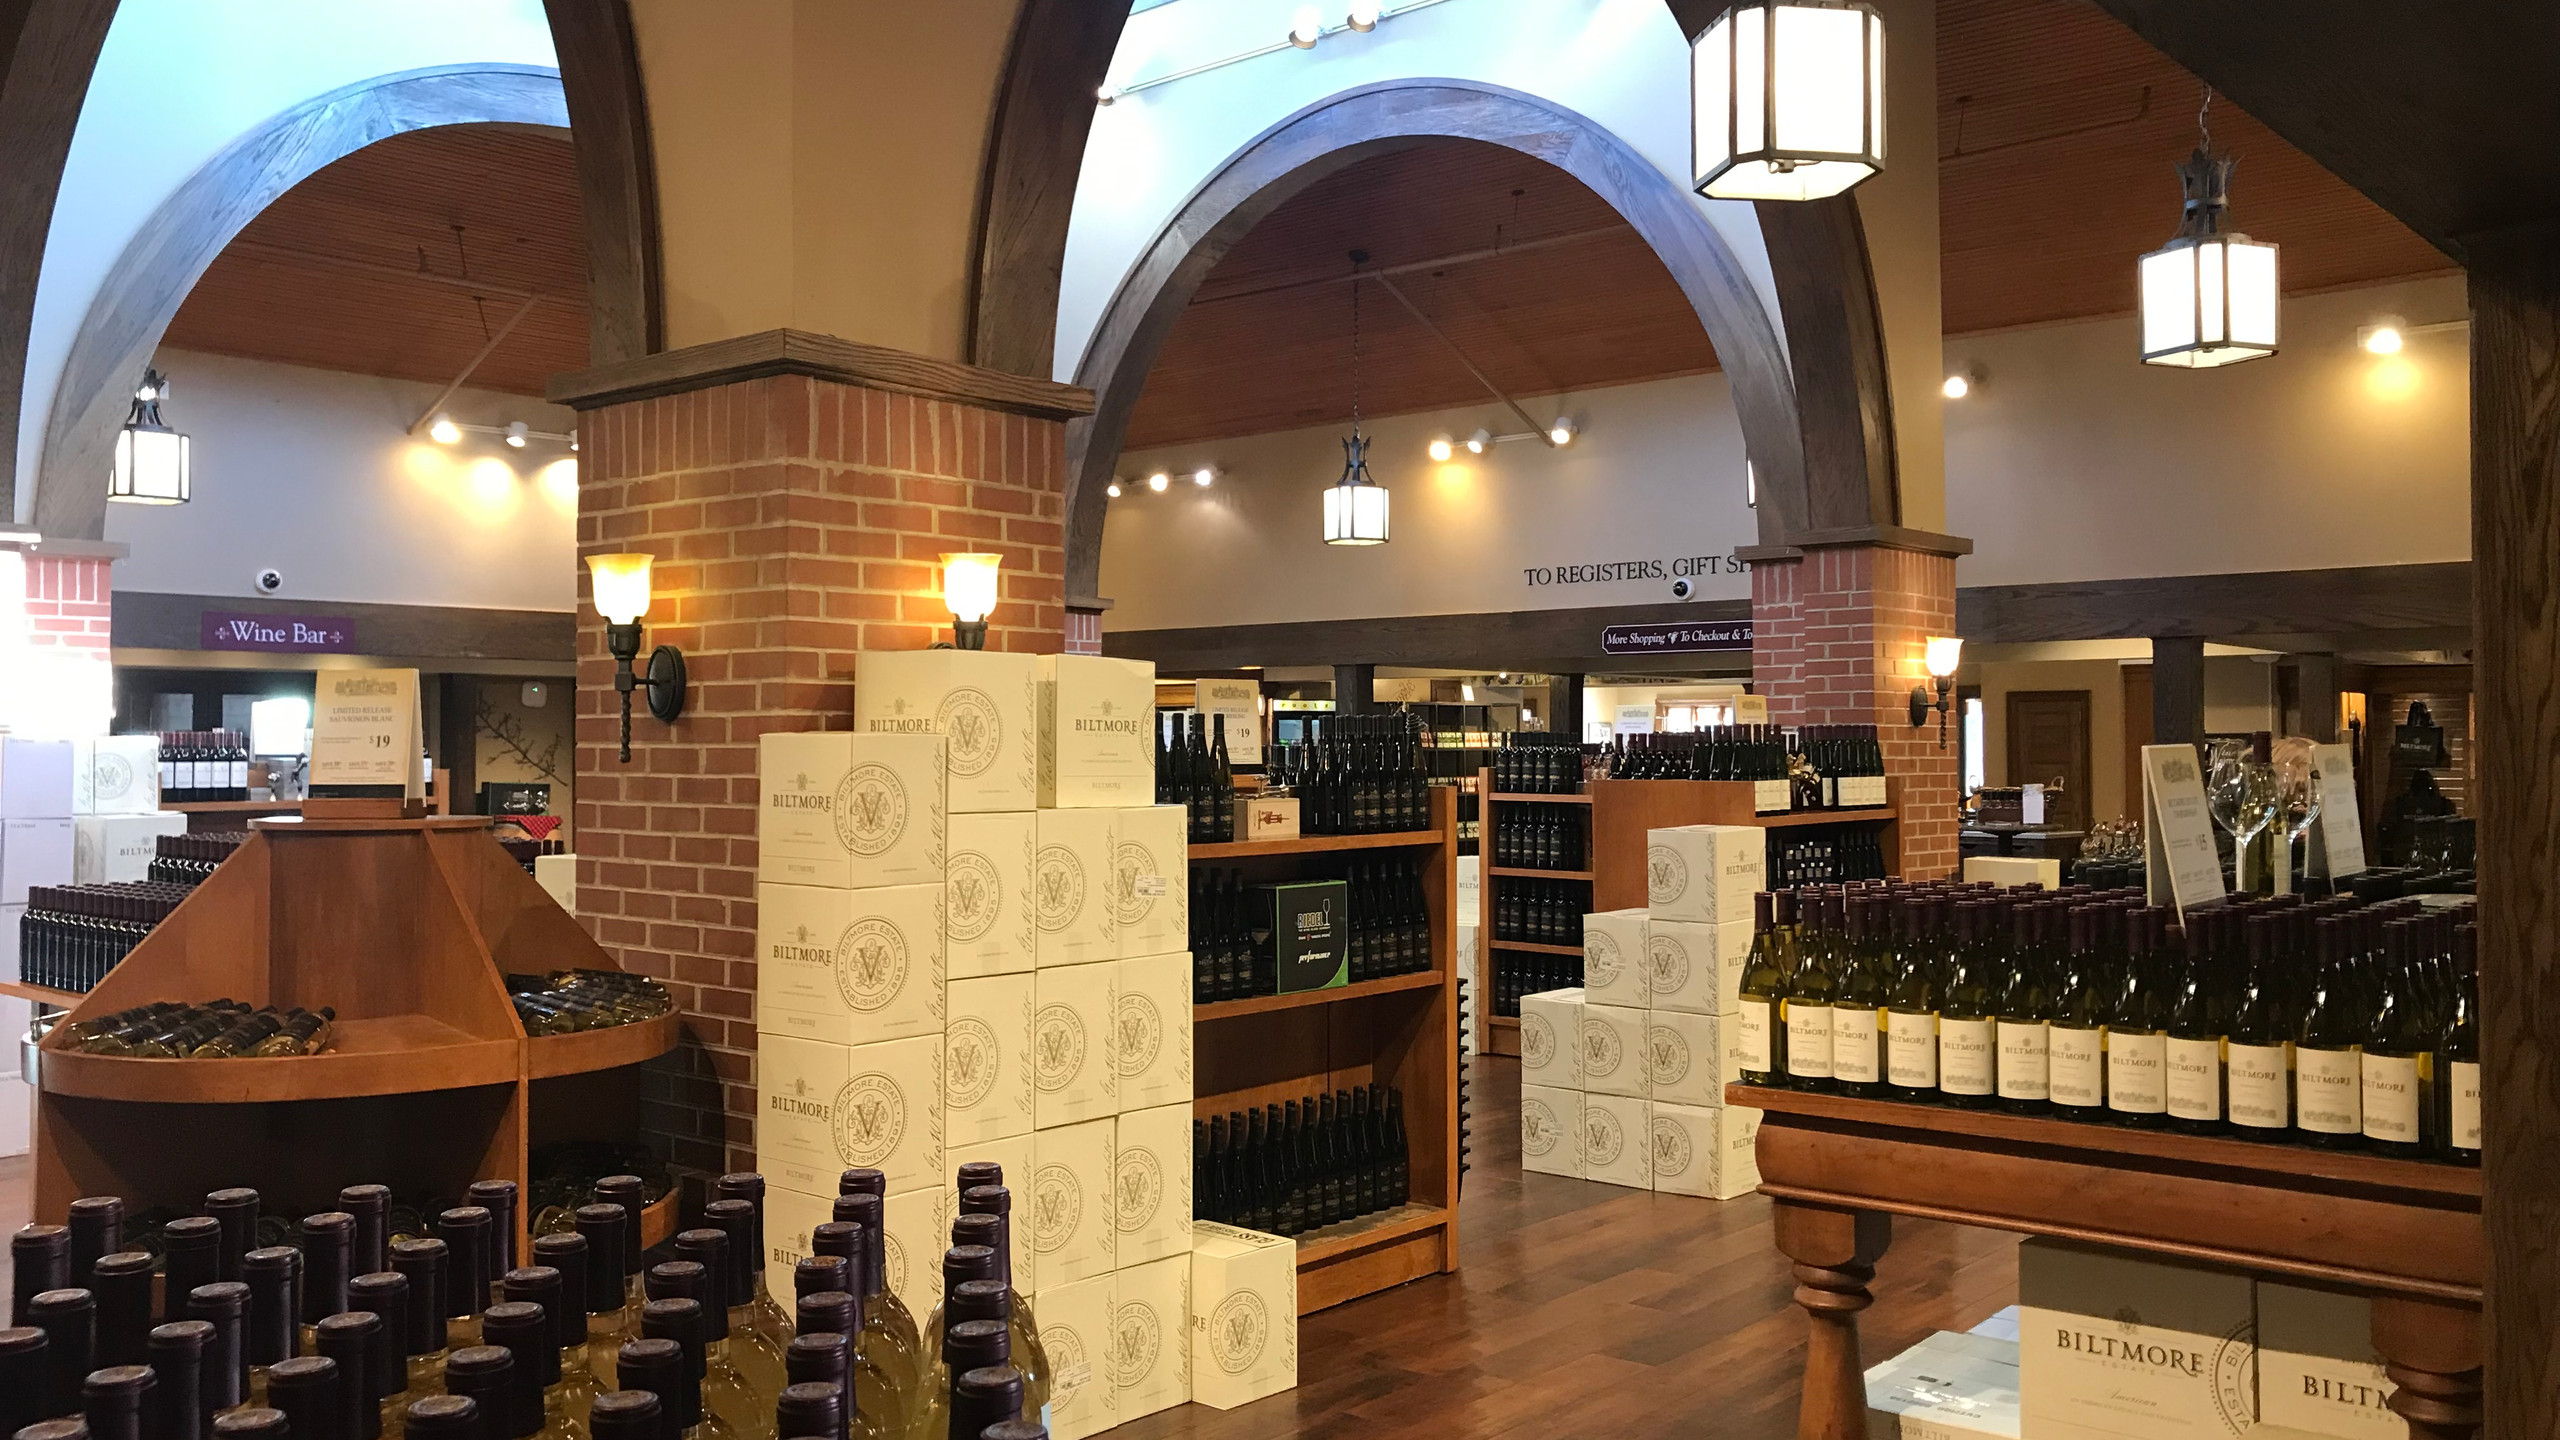 The Tasting Room and Gift Shop